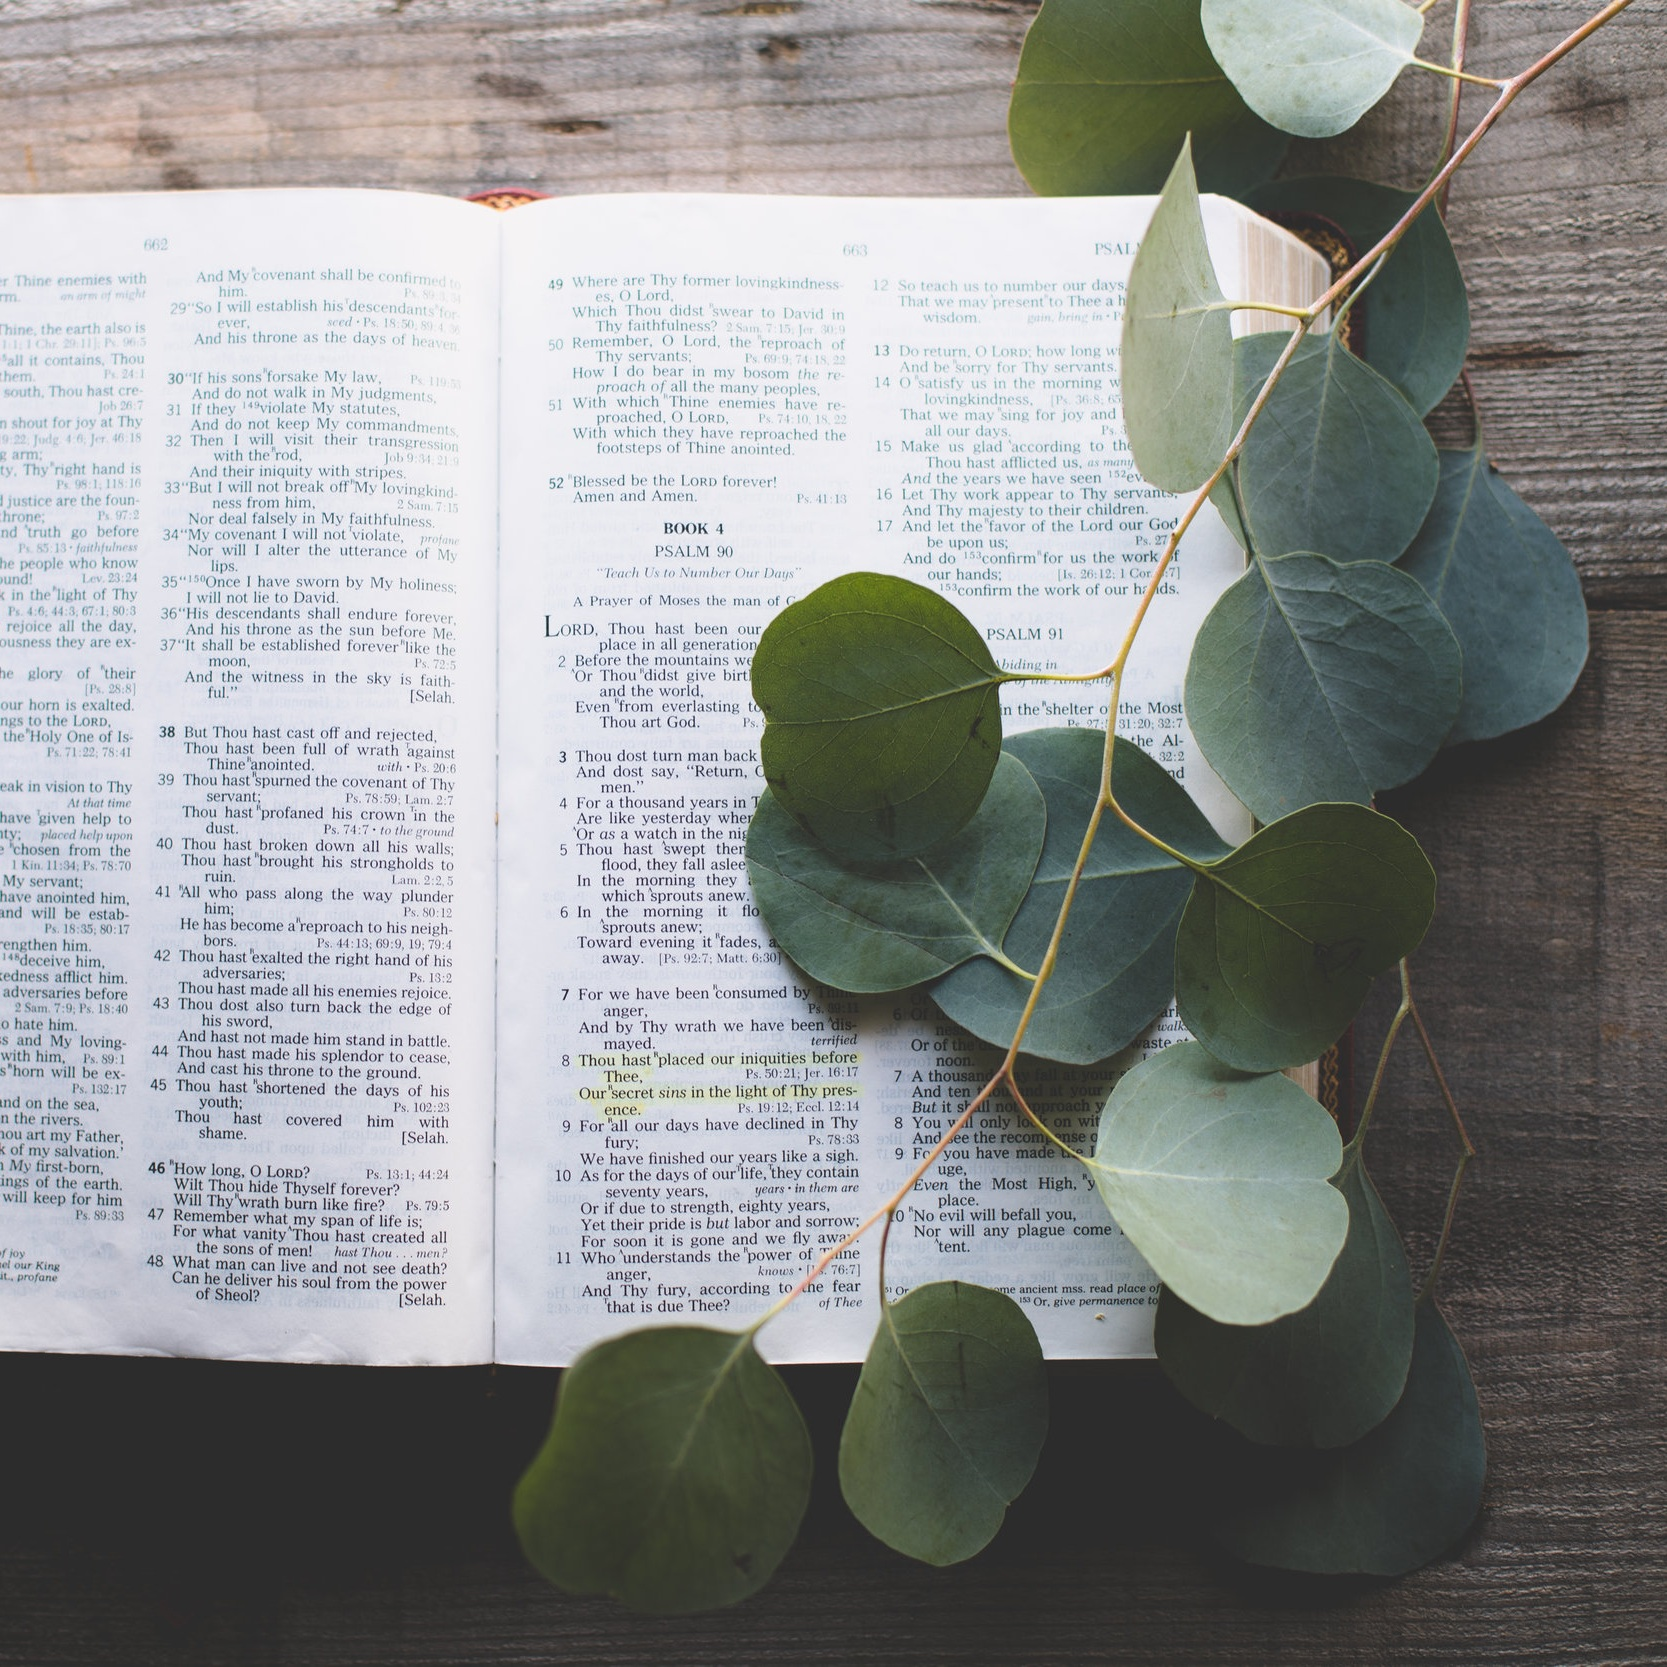 Emerge bible study - Emerge Women's Bible Study meets Tuesday mornings at 9:30 a.m. in the Family Center Fireside Room, or Wednesday evenings at 6:45 p.m. in the Mountain Perk Café.